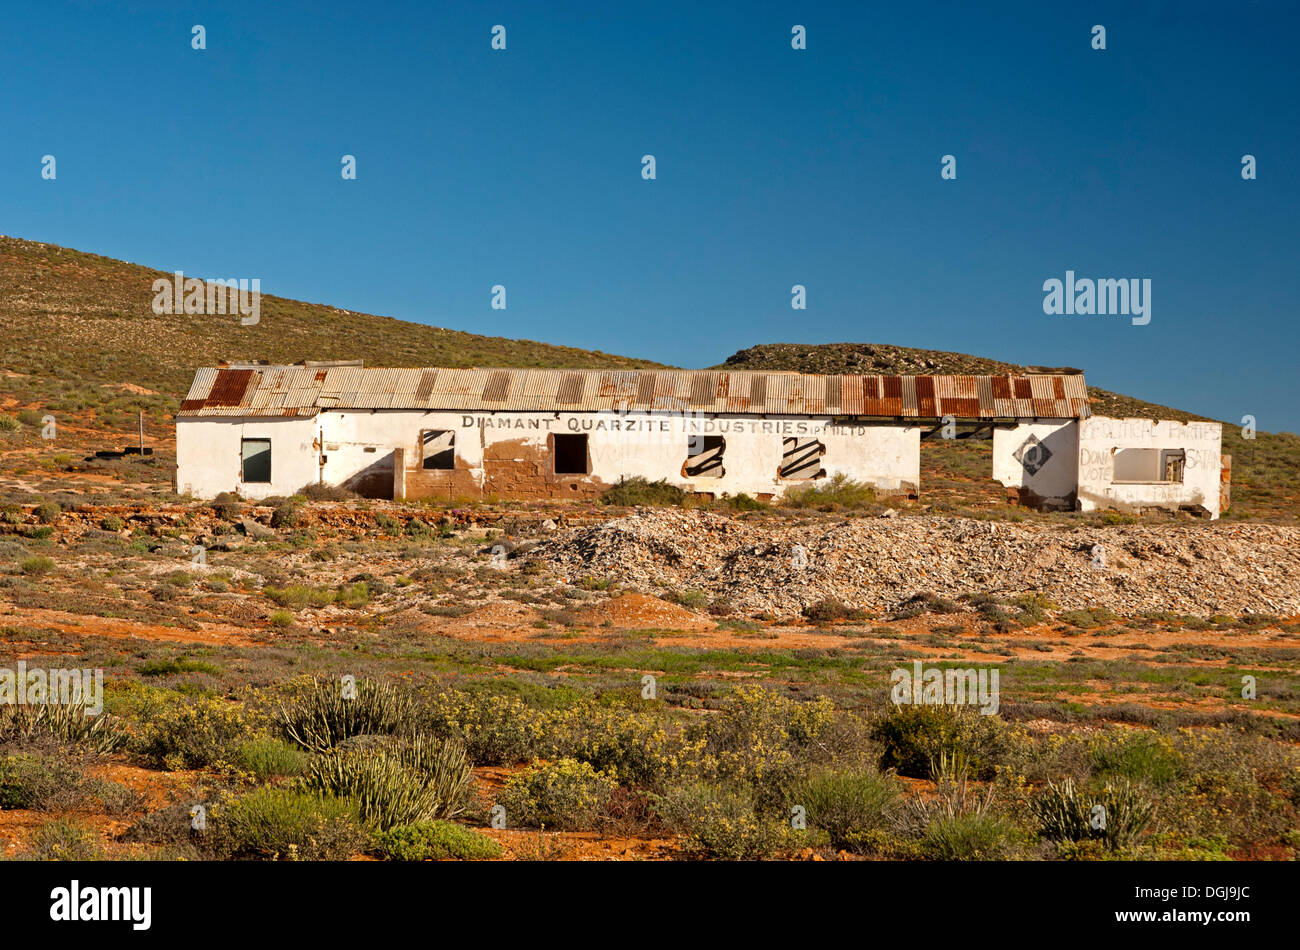 Dilapidated office buildings of the Diamond Quarzite Industries Ltd., National Road 7, Northern Cape province, South Africa - Stock Image